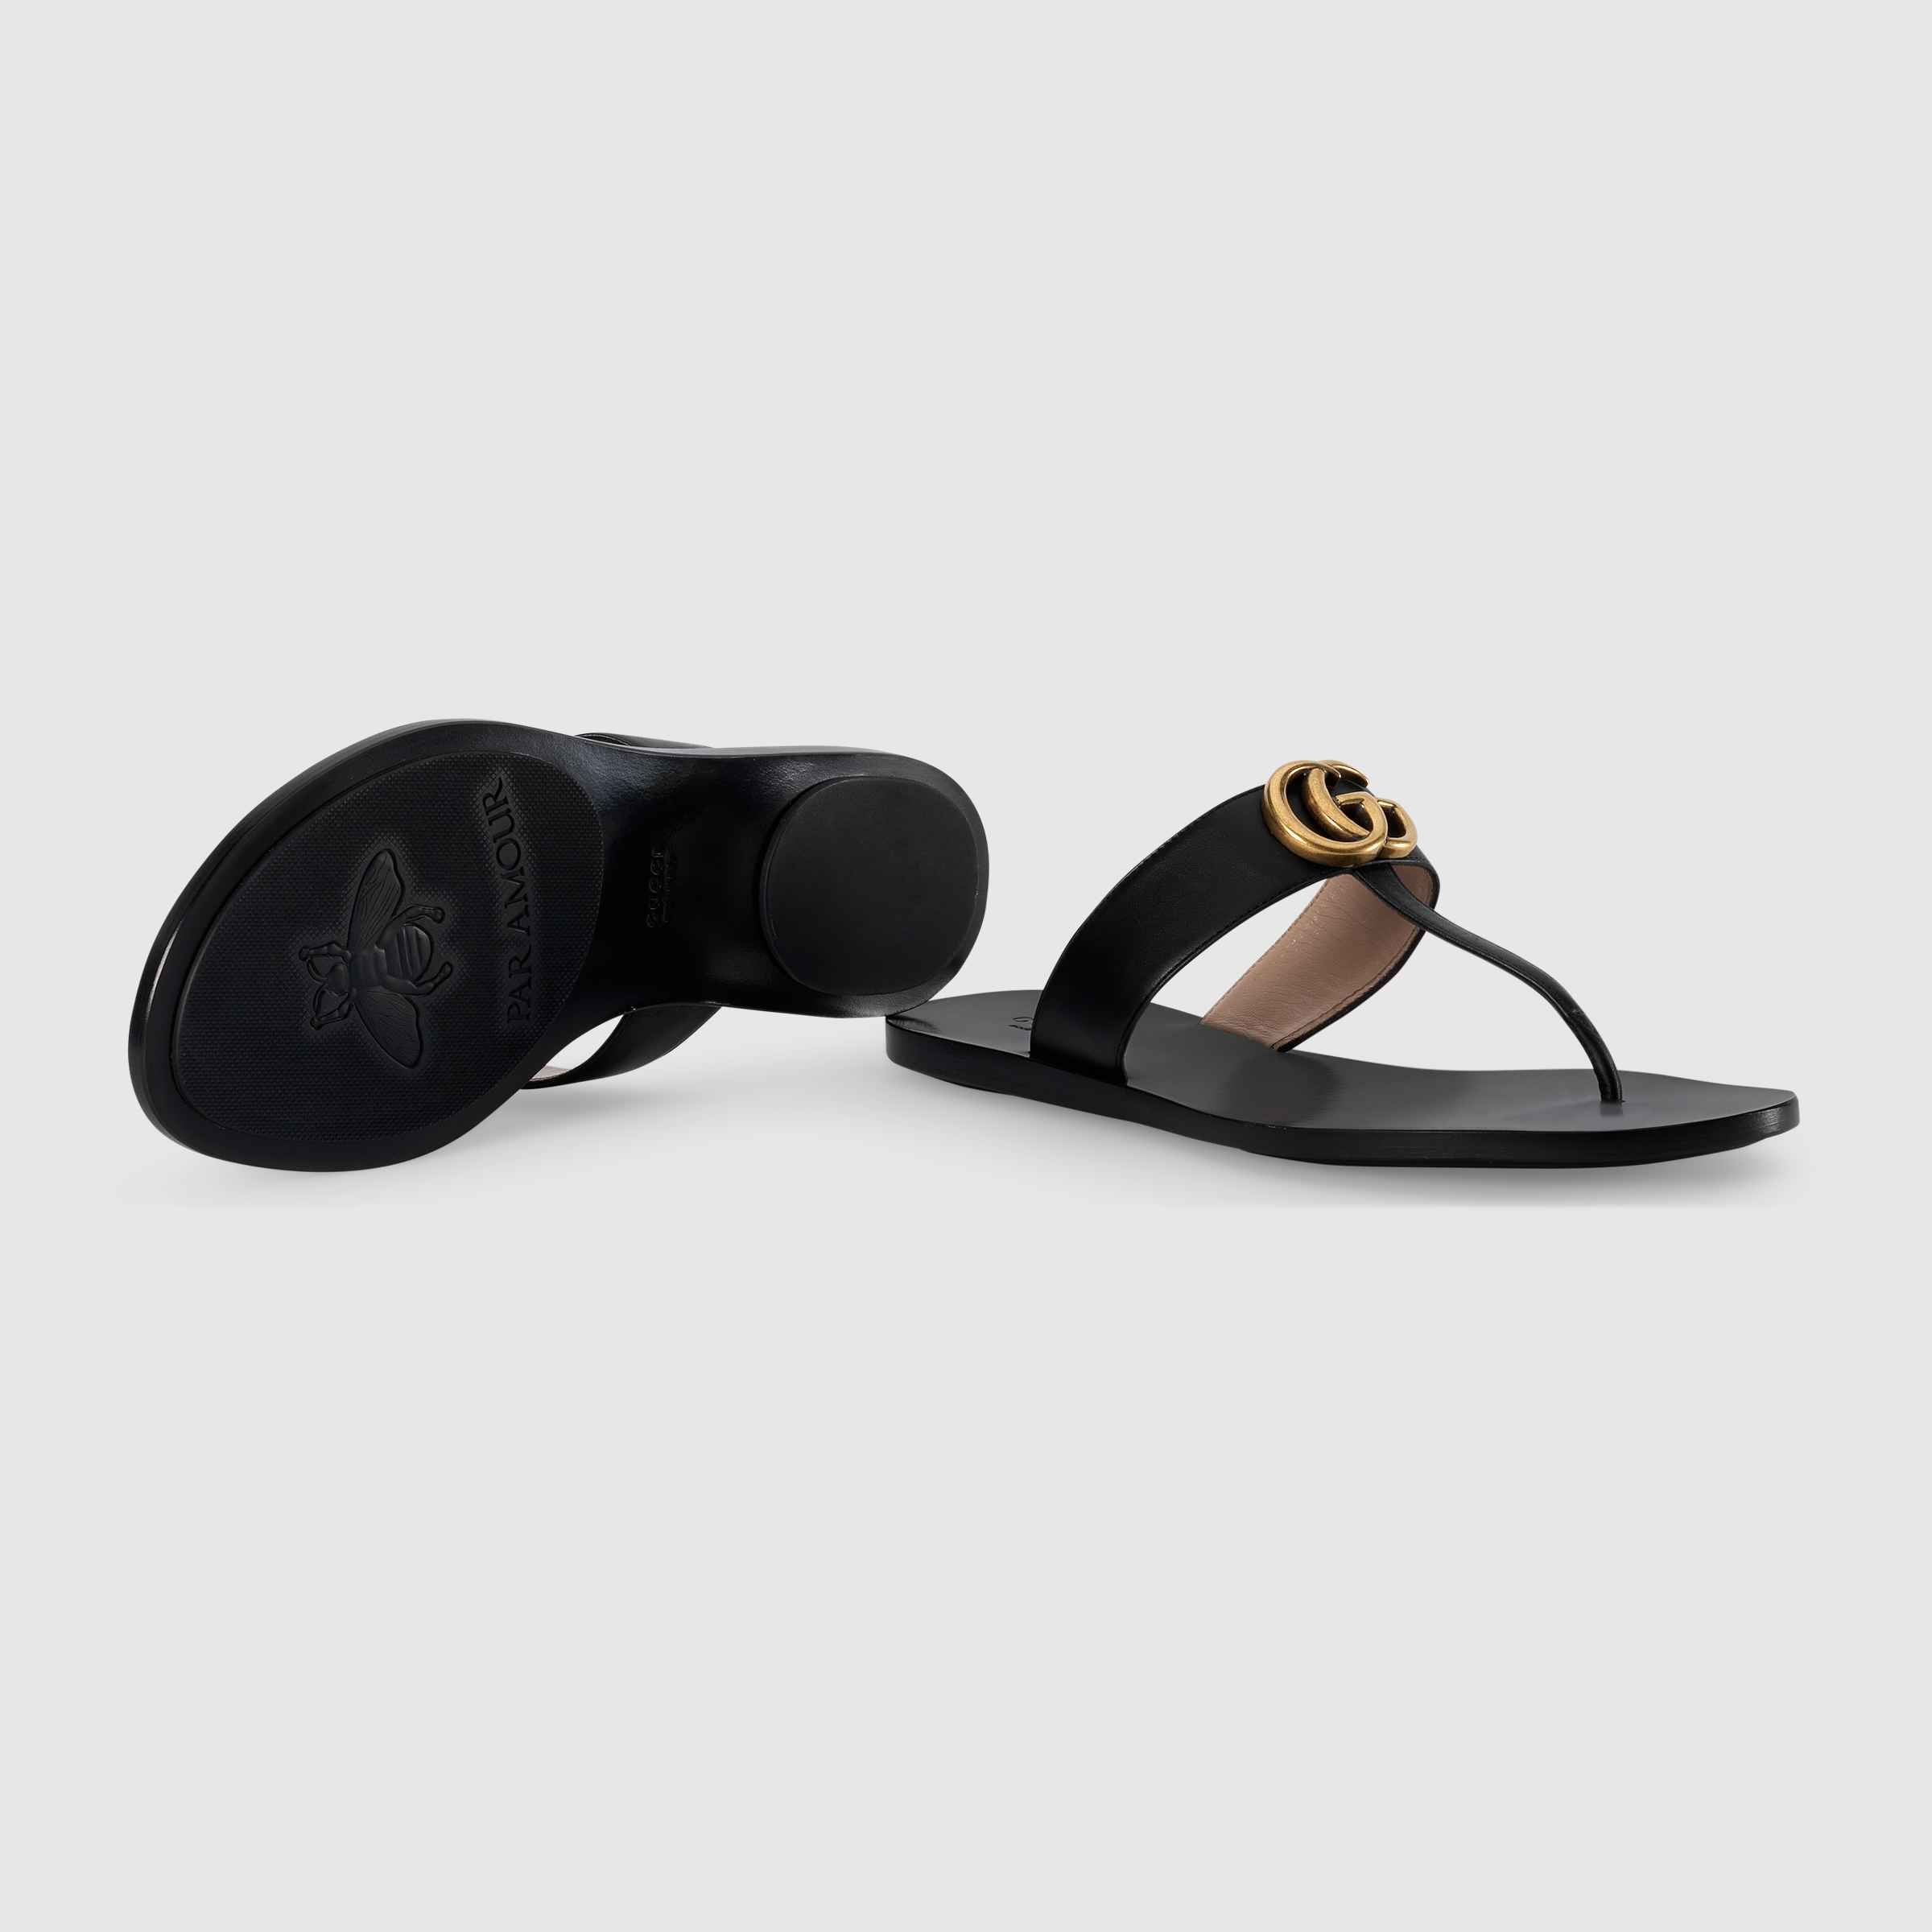 413dc6b0ea3 Shop the Leather thong sandal with Double G by Gucci. The leather thong  sandal is embellished with the Double G hardware—an archival design from  the  70s.